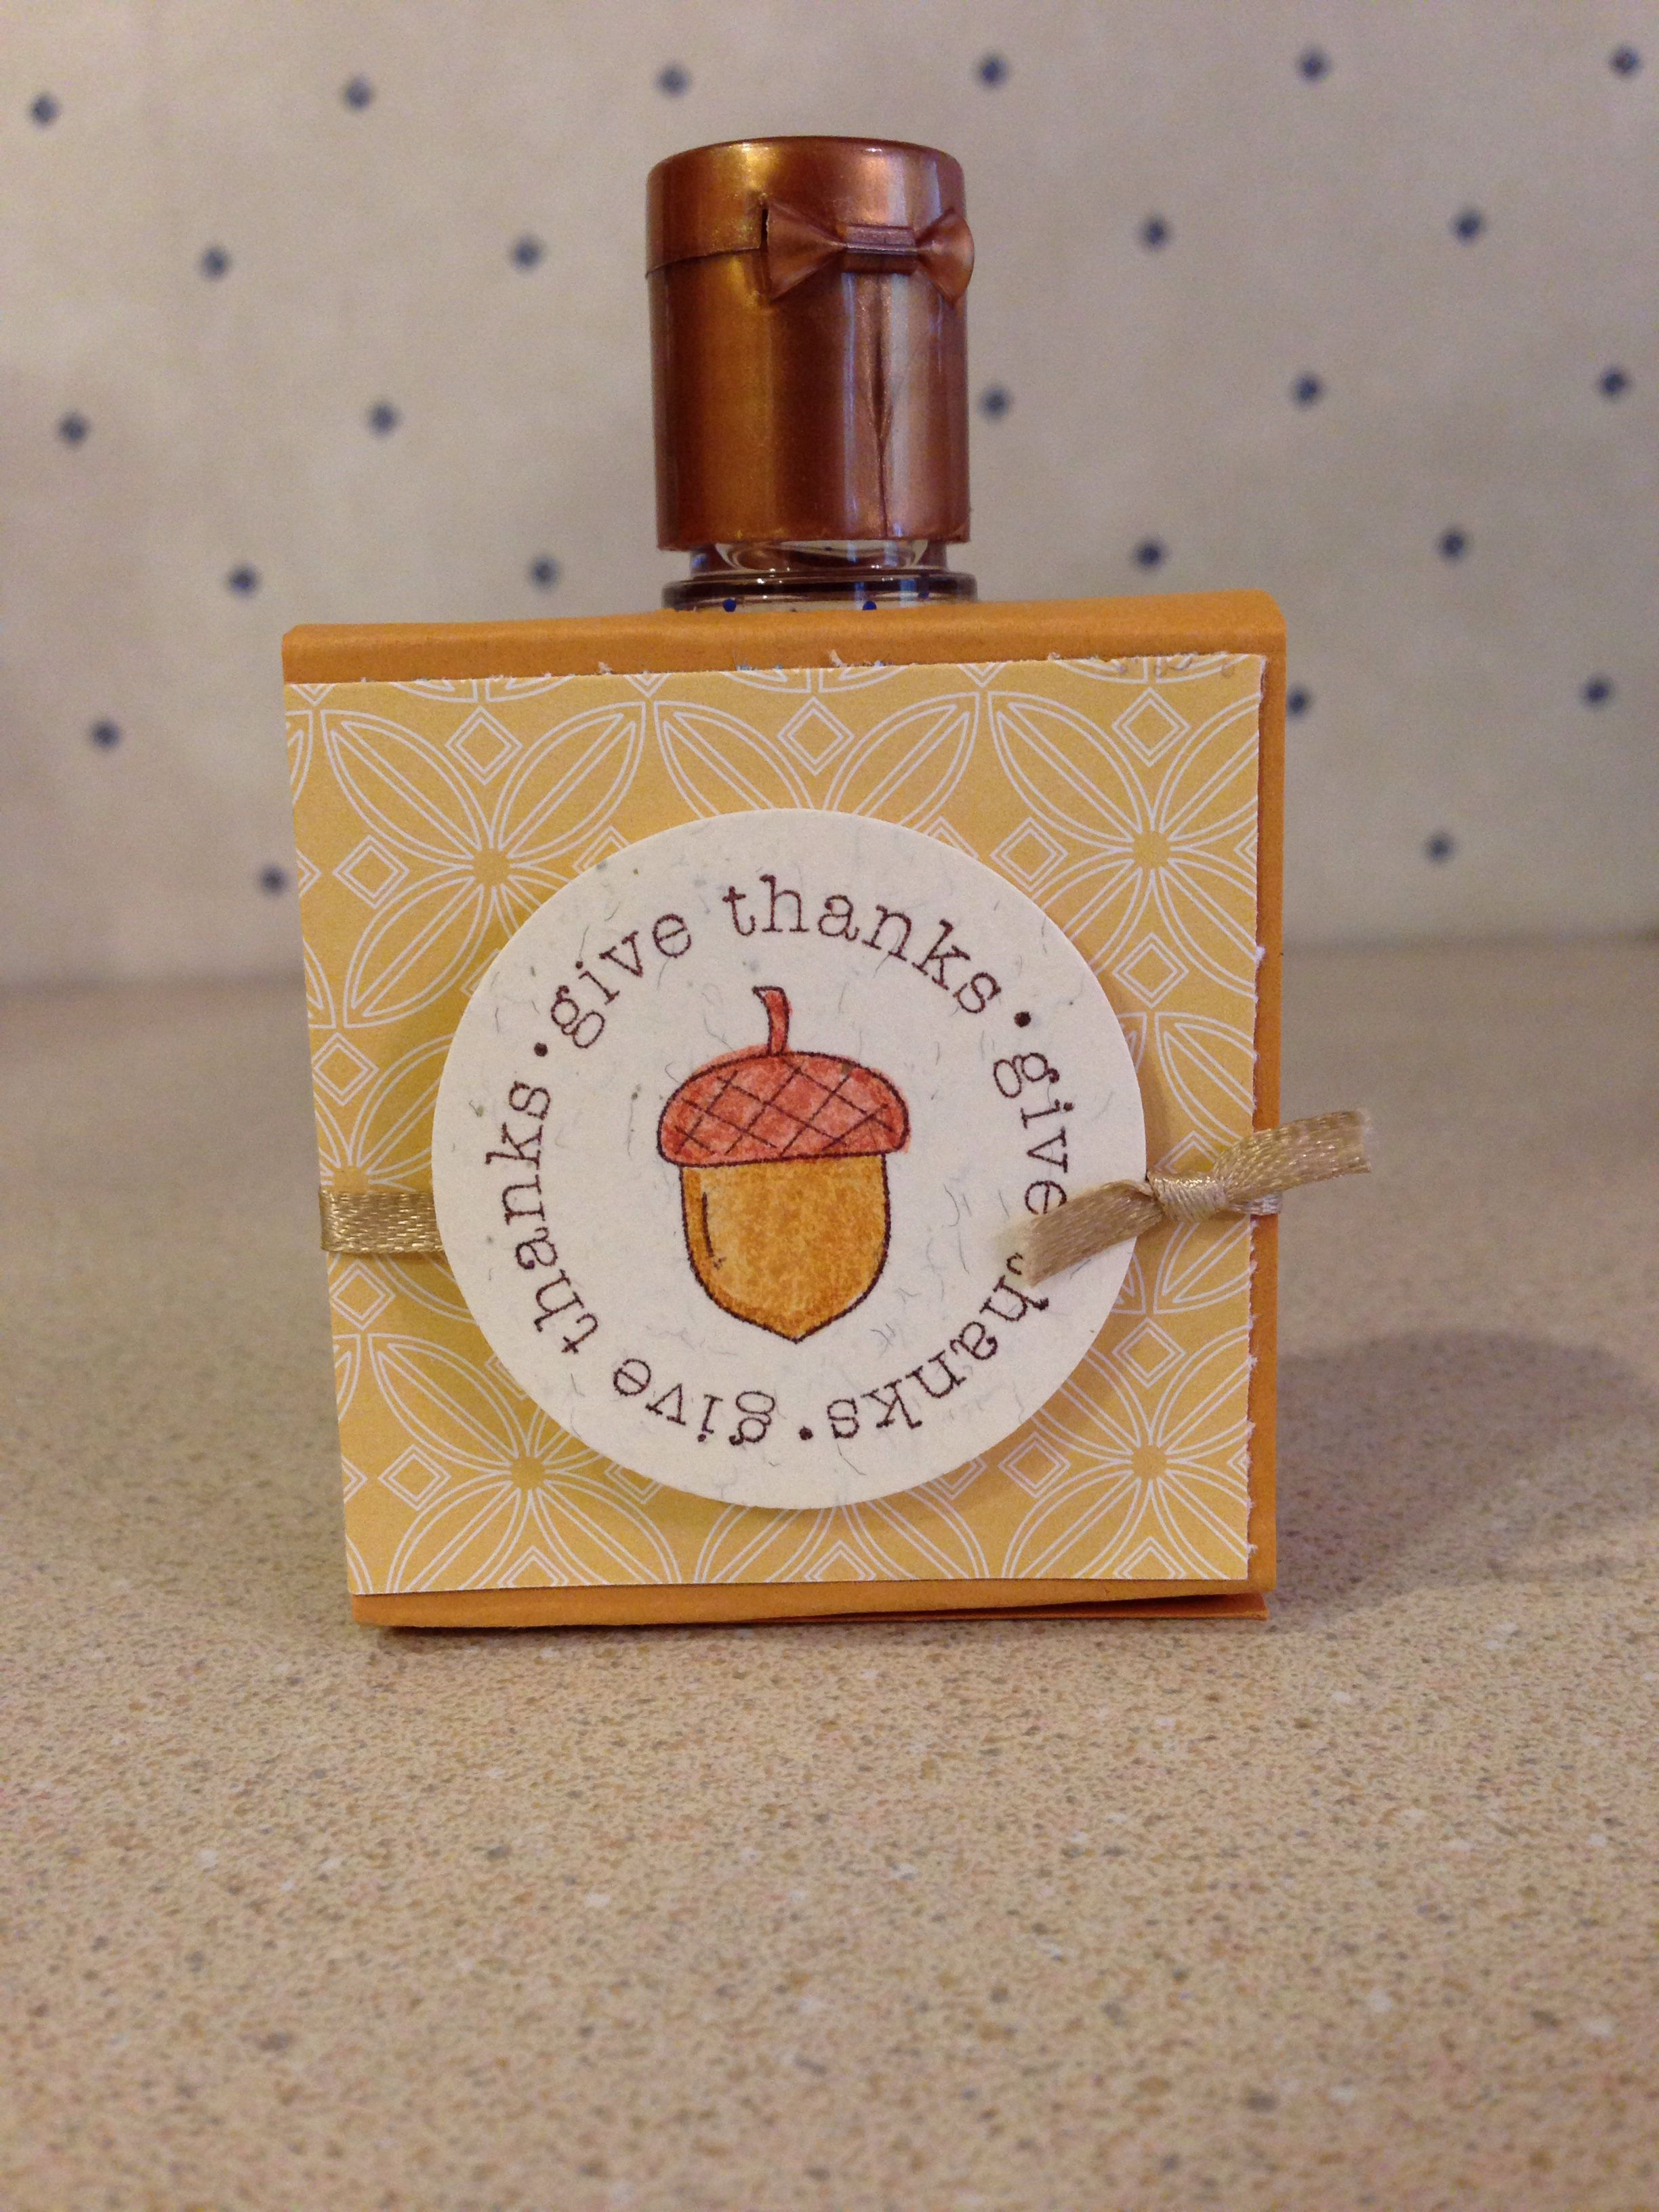 Fun Little Hand Sanitizer Holder Made With Stampin Up Supplies For